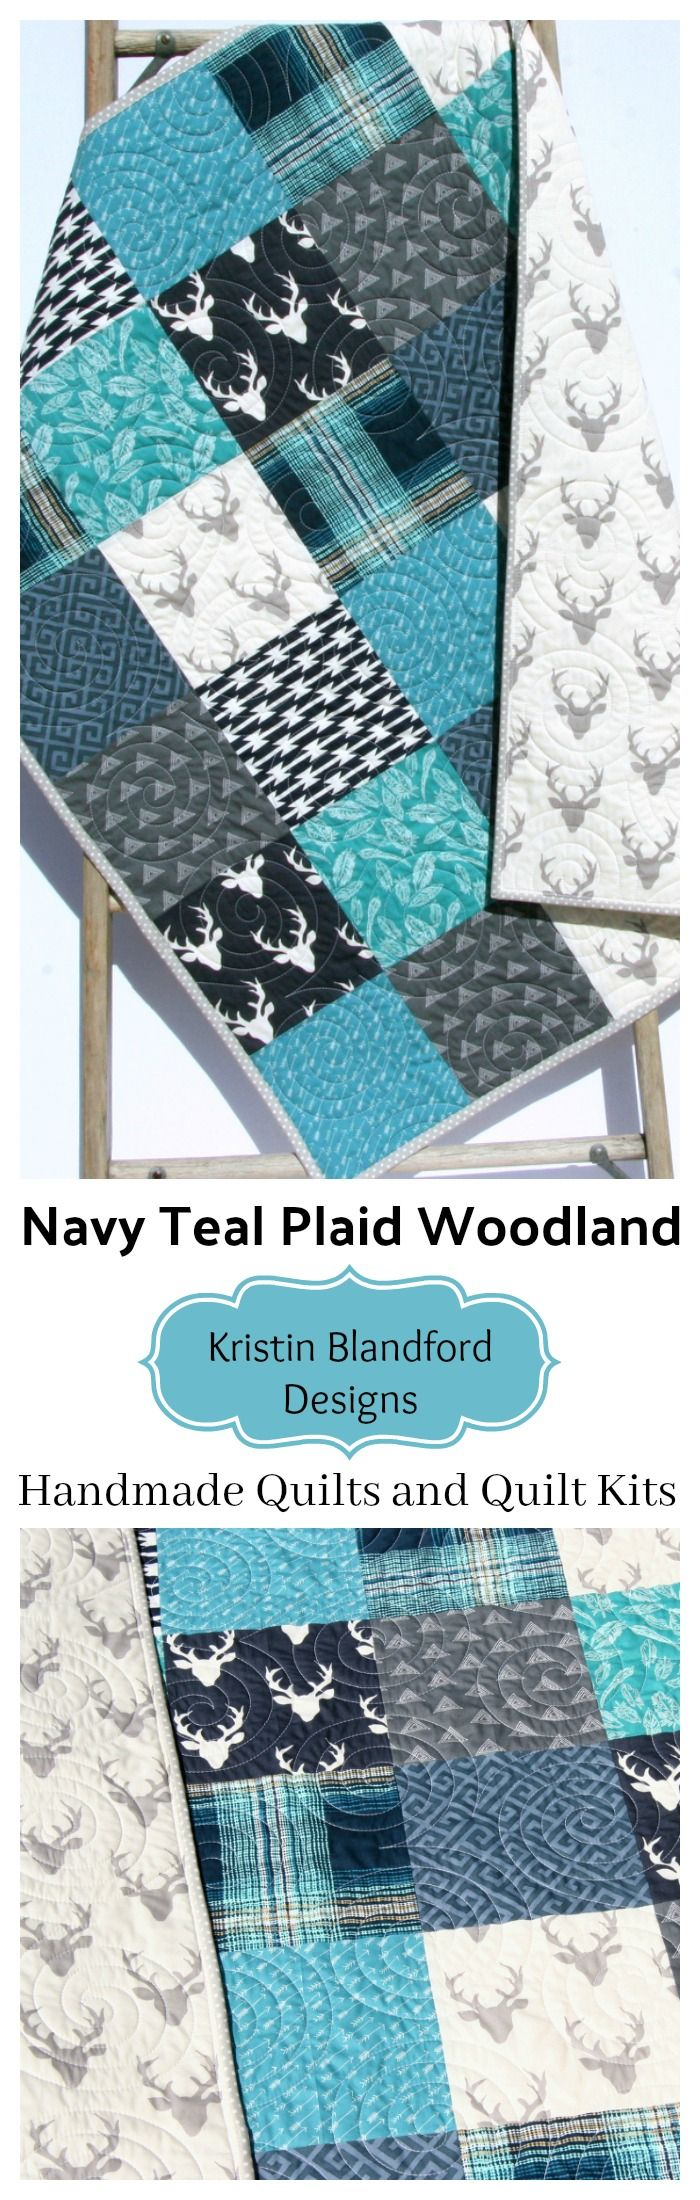 Navy Blue Plaid Baby Bedding, Baby Boy Quilt, Handmade Baby Bedding, Deer Buck Aztec Blue Buffalo Plaid Feathers, Handmade Quilt for Sale, Teal Navy Blue Grey Gray, Throw Quilt Kit, Toddler Quilt Kit, Baby Quilt Kit, Twin Bedding Quilt Kit, Simple Easy Patchwork Quilting Project Sewing Craft Idea for Kids by Kristin Blandford Designs #uniquegifts #babybedding #handmade #quilts #woodlandnursery #plaid